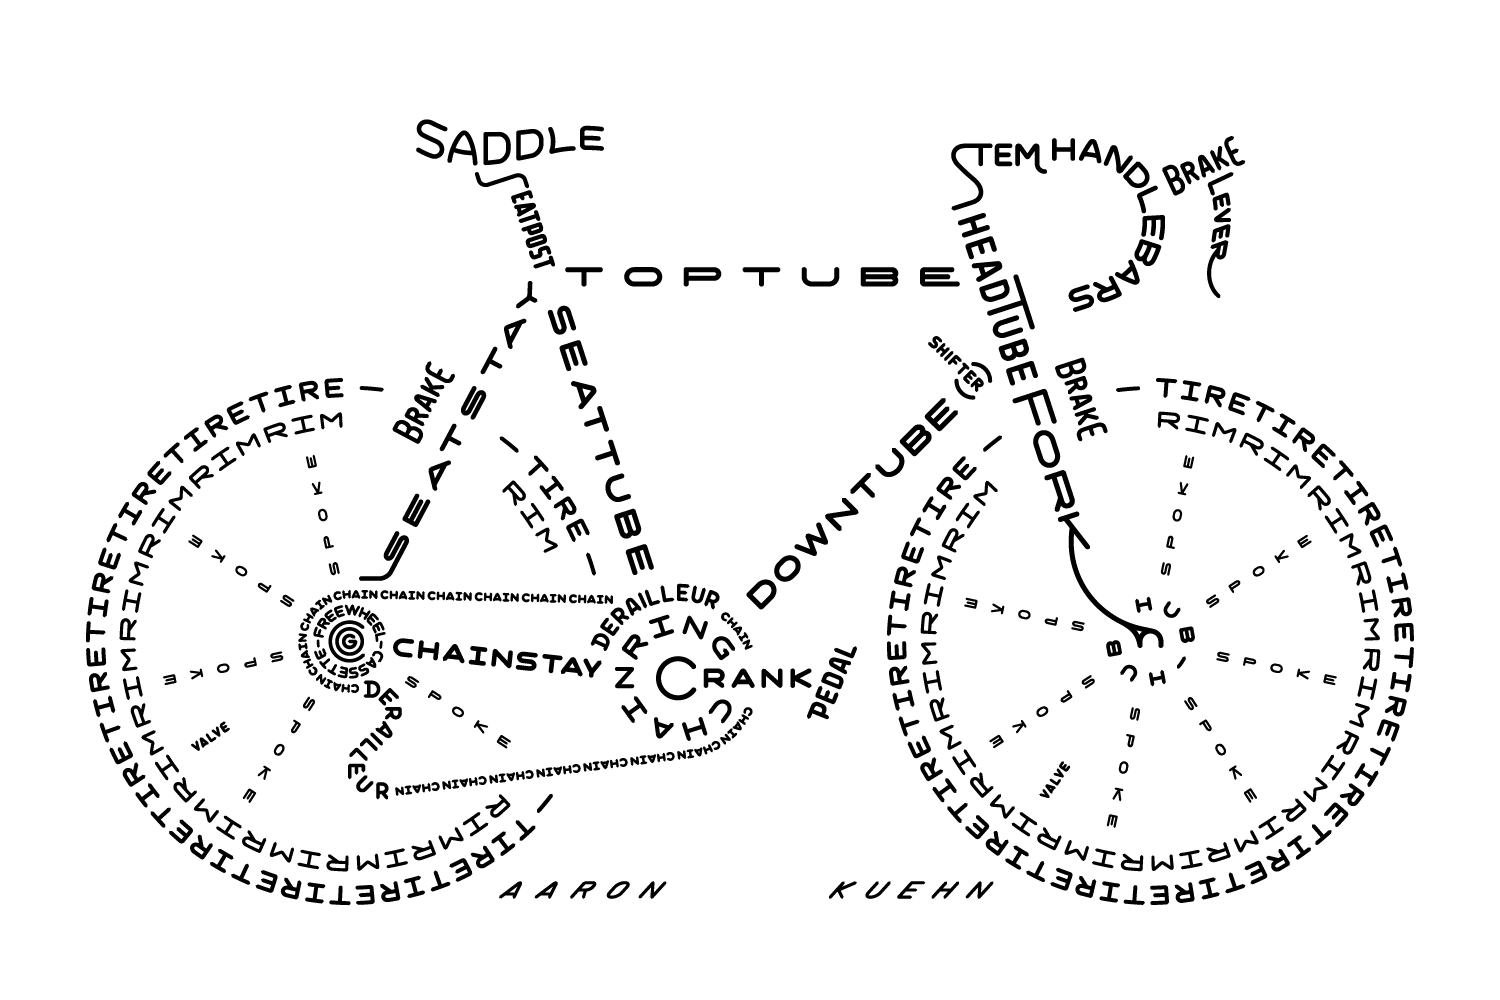 An anatomical diagram of a bicycle, composed of the names of component parts using typography.